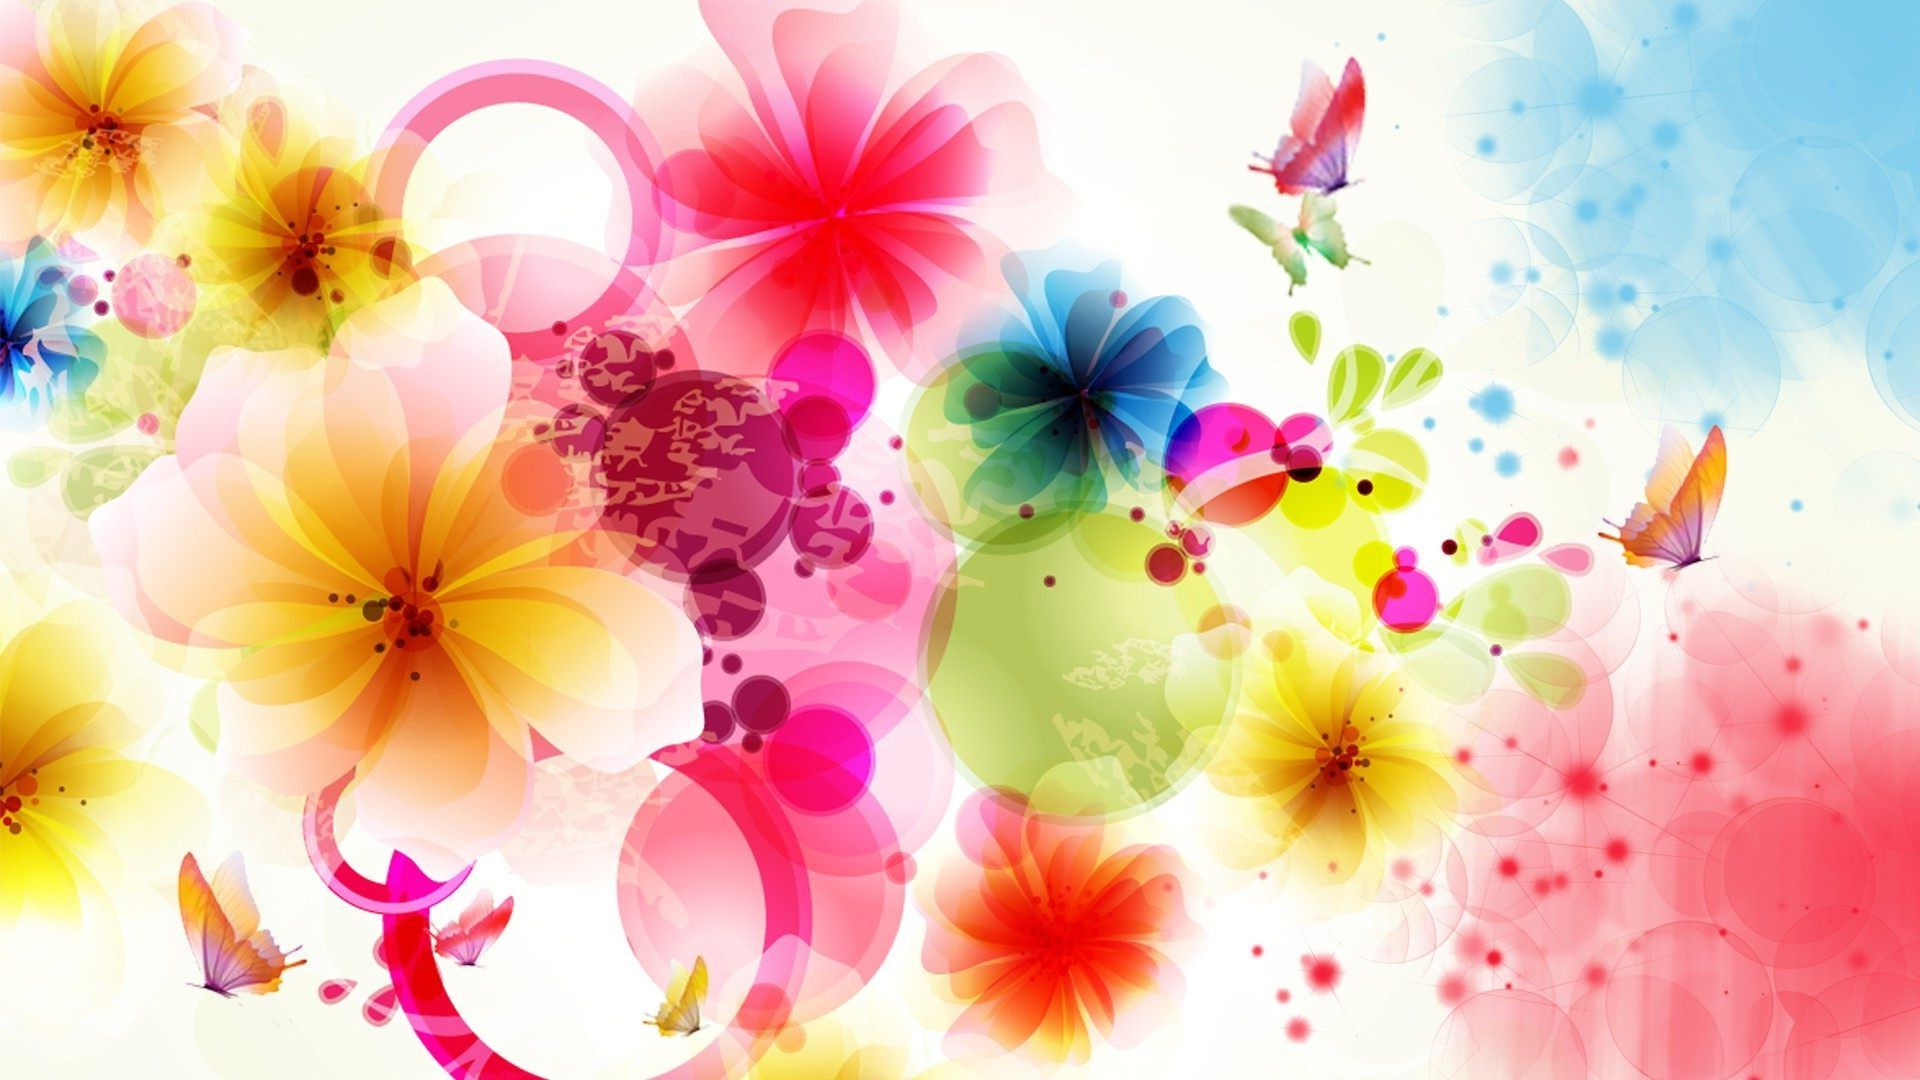 Flower Basket Of Colorful Flowers Wallpapers Flowers - High Quality Flowers And Butterfly , HD Wallpaper & Backgrounds